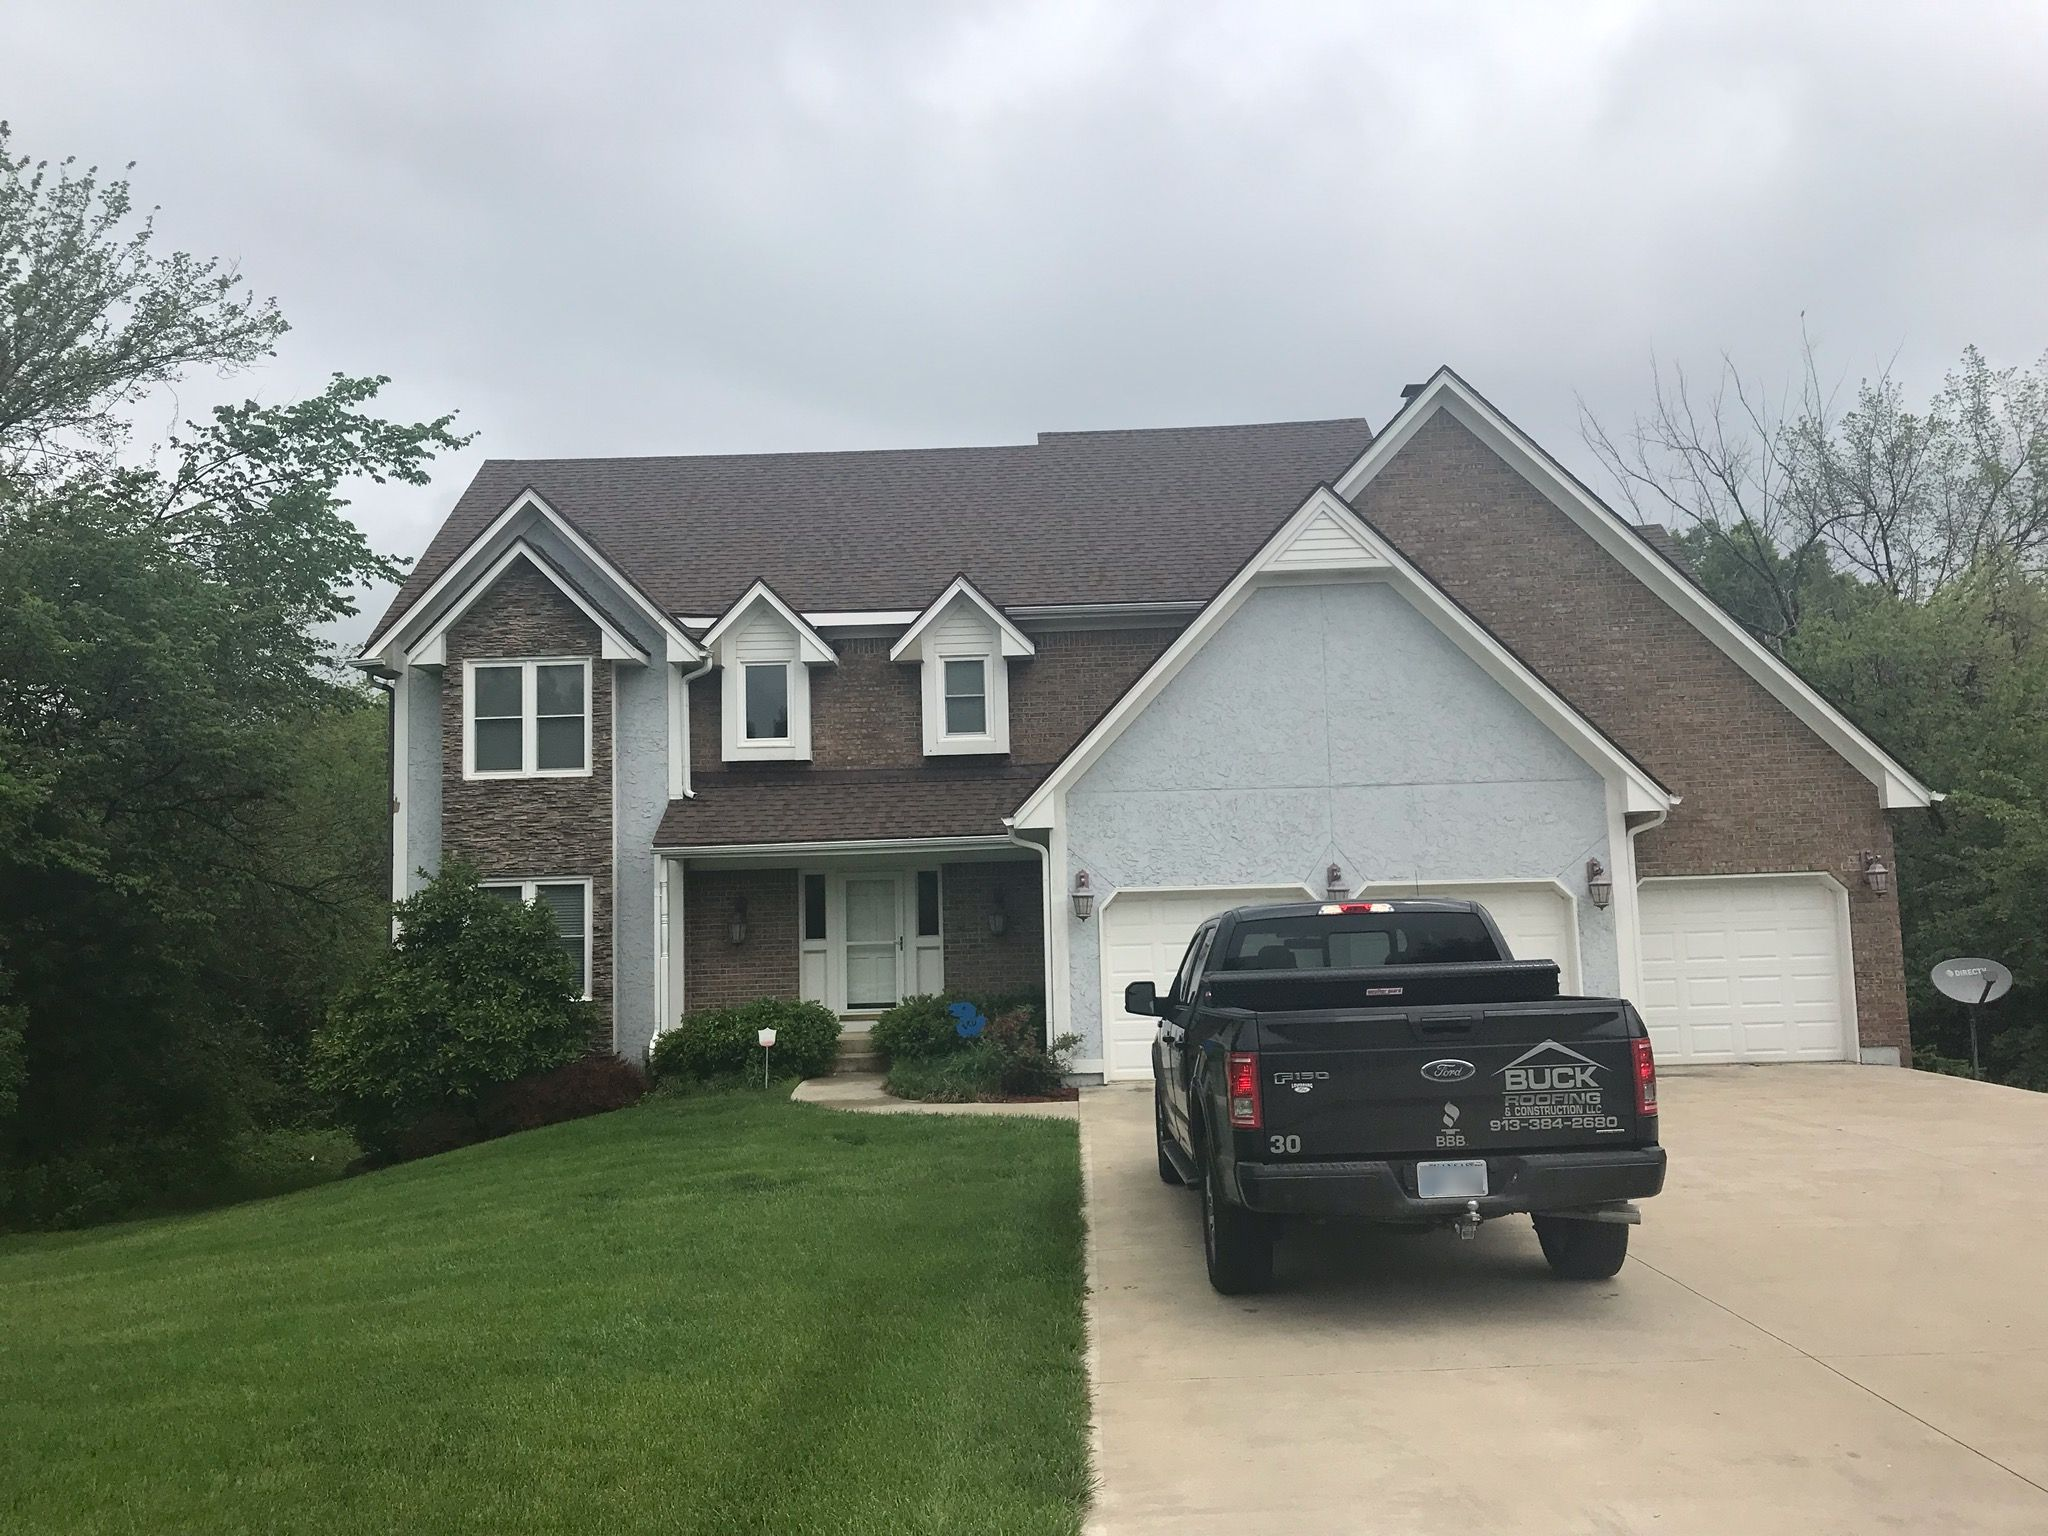 KC residential roofing company - Buck Roofing KCMO and KCKS - CertainTeed Landmark Pro - Shadow Ridge - Heather Blend